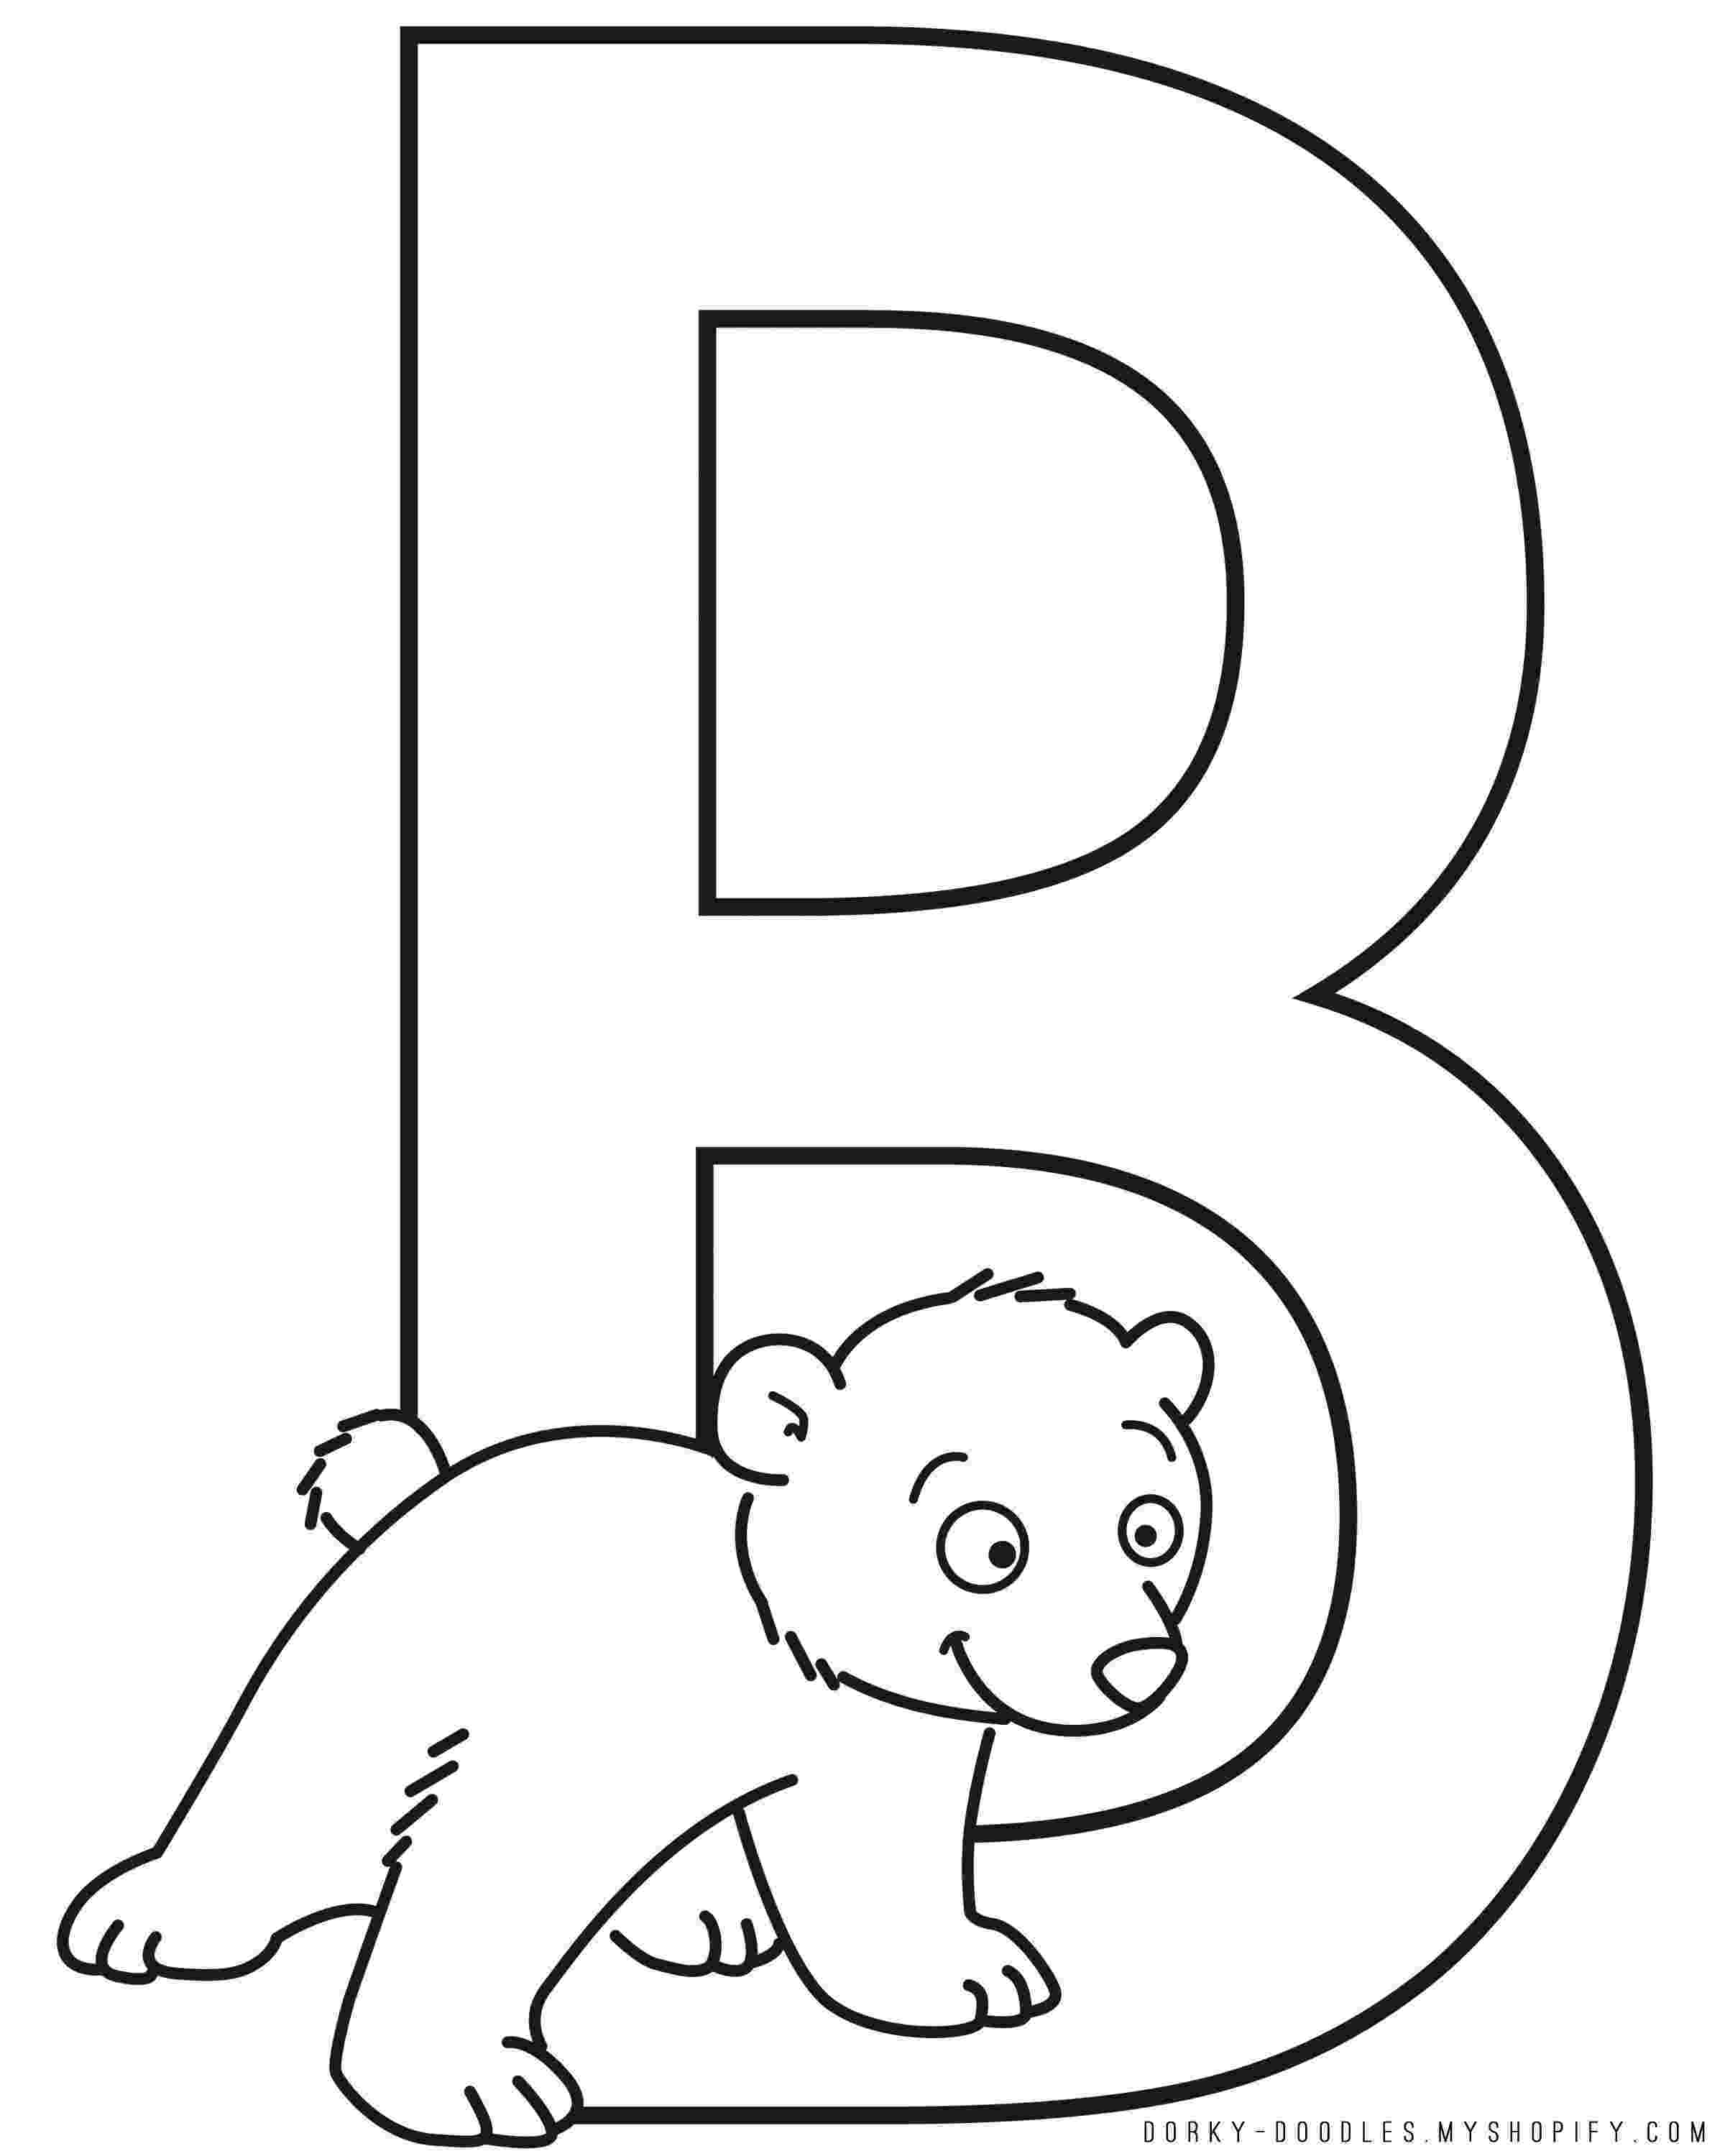 coloring pages with the letter b letter b is for bunny coloring page free printable b with coloring letter pages the